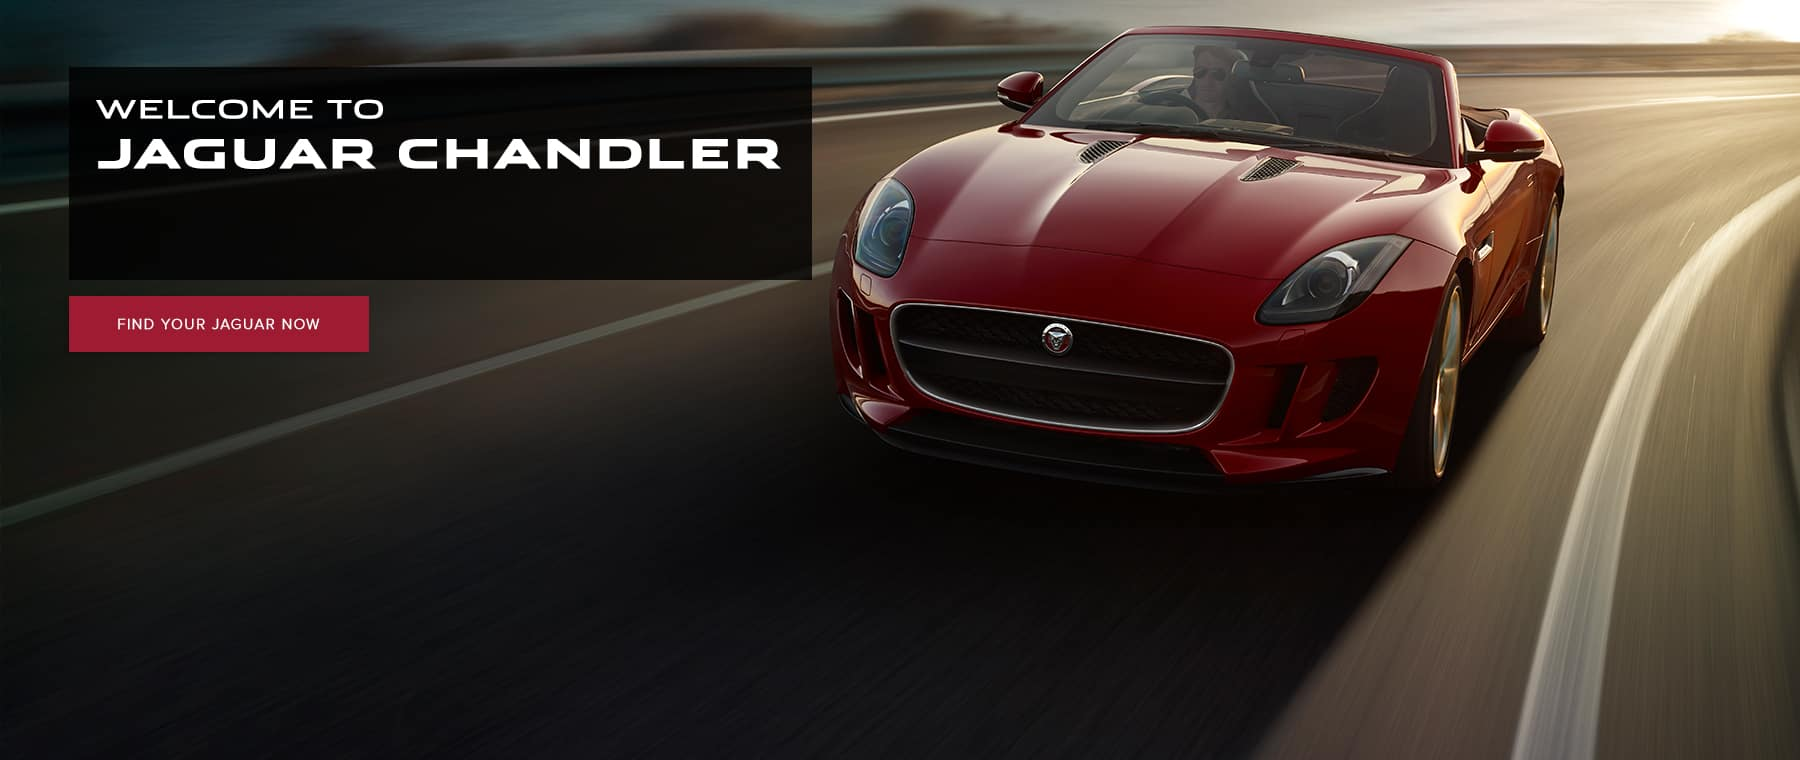 Jaguar Chandler Welcome